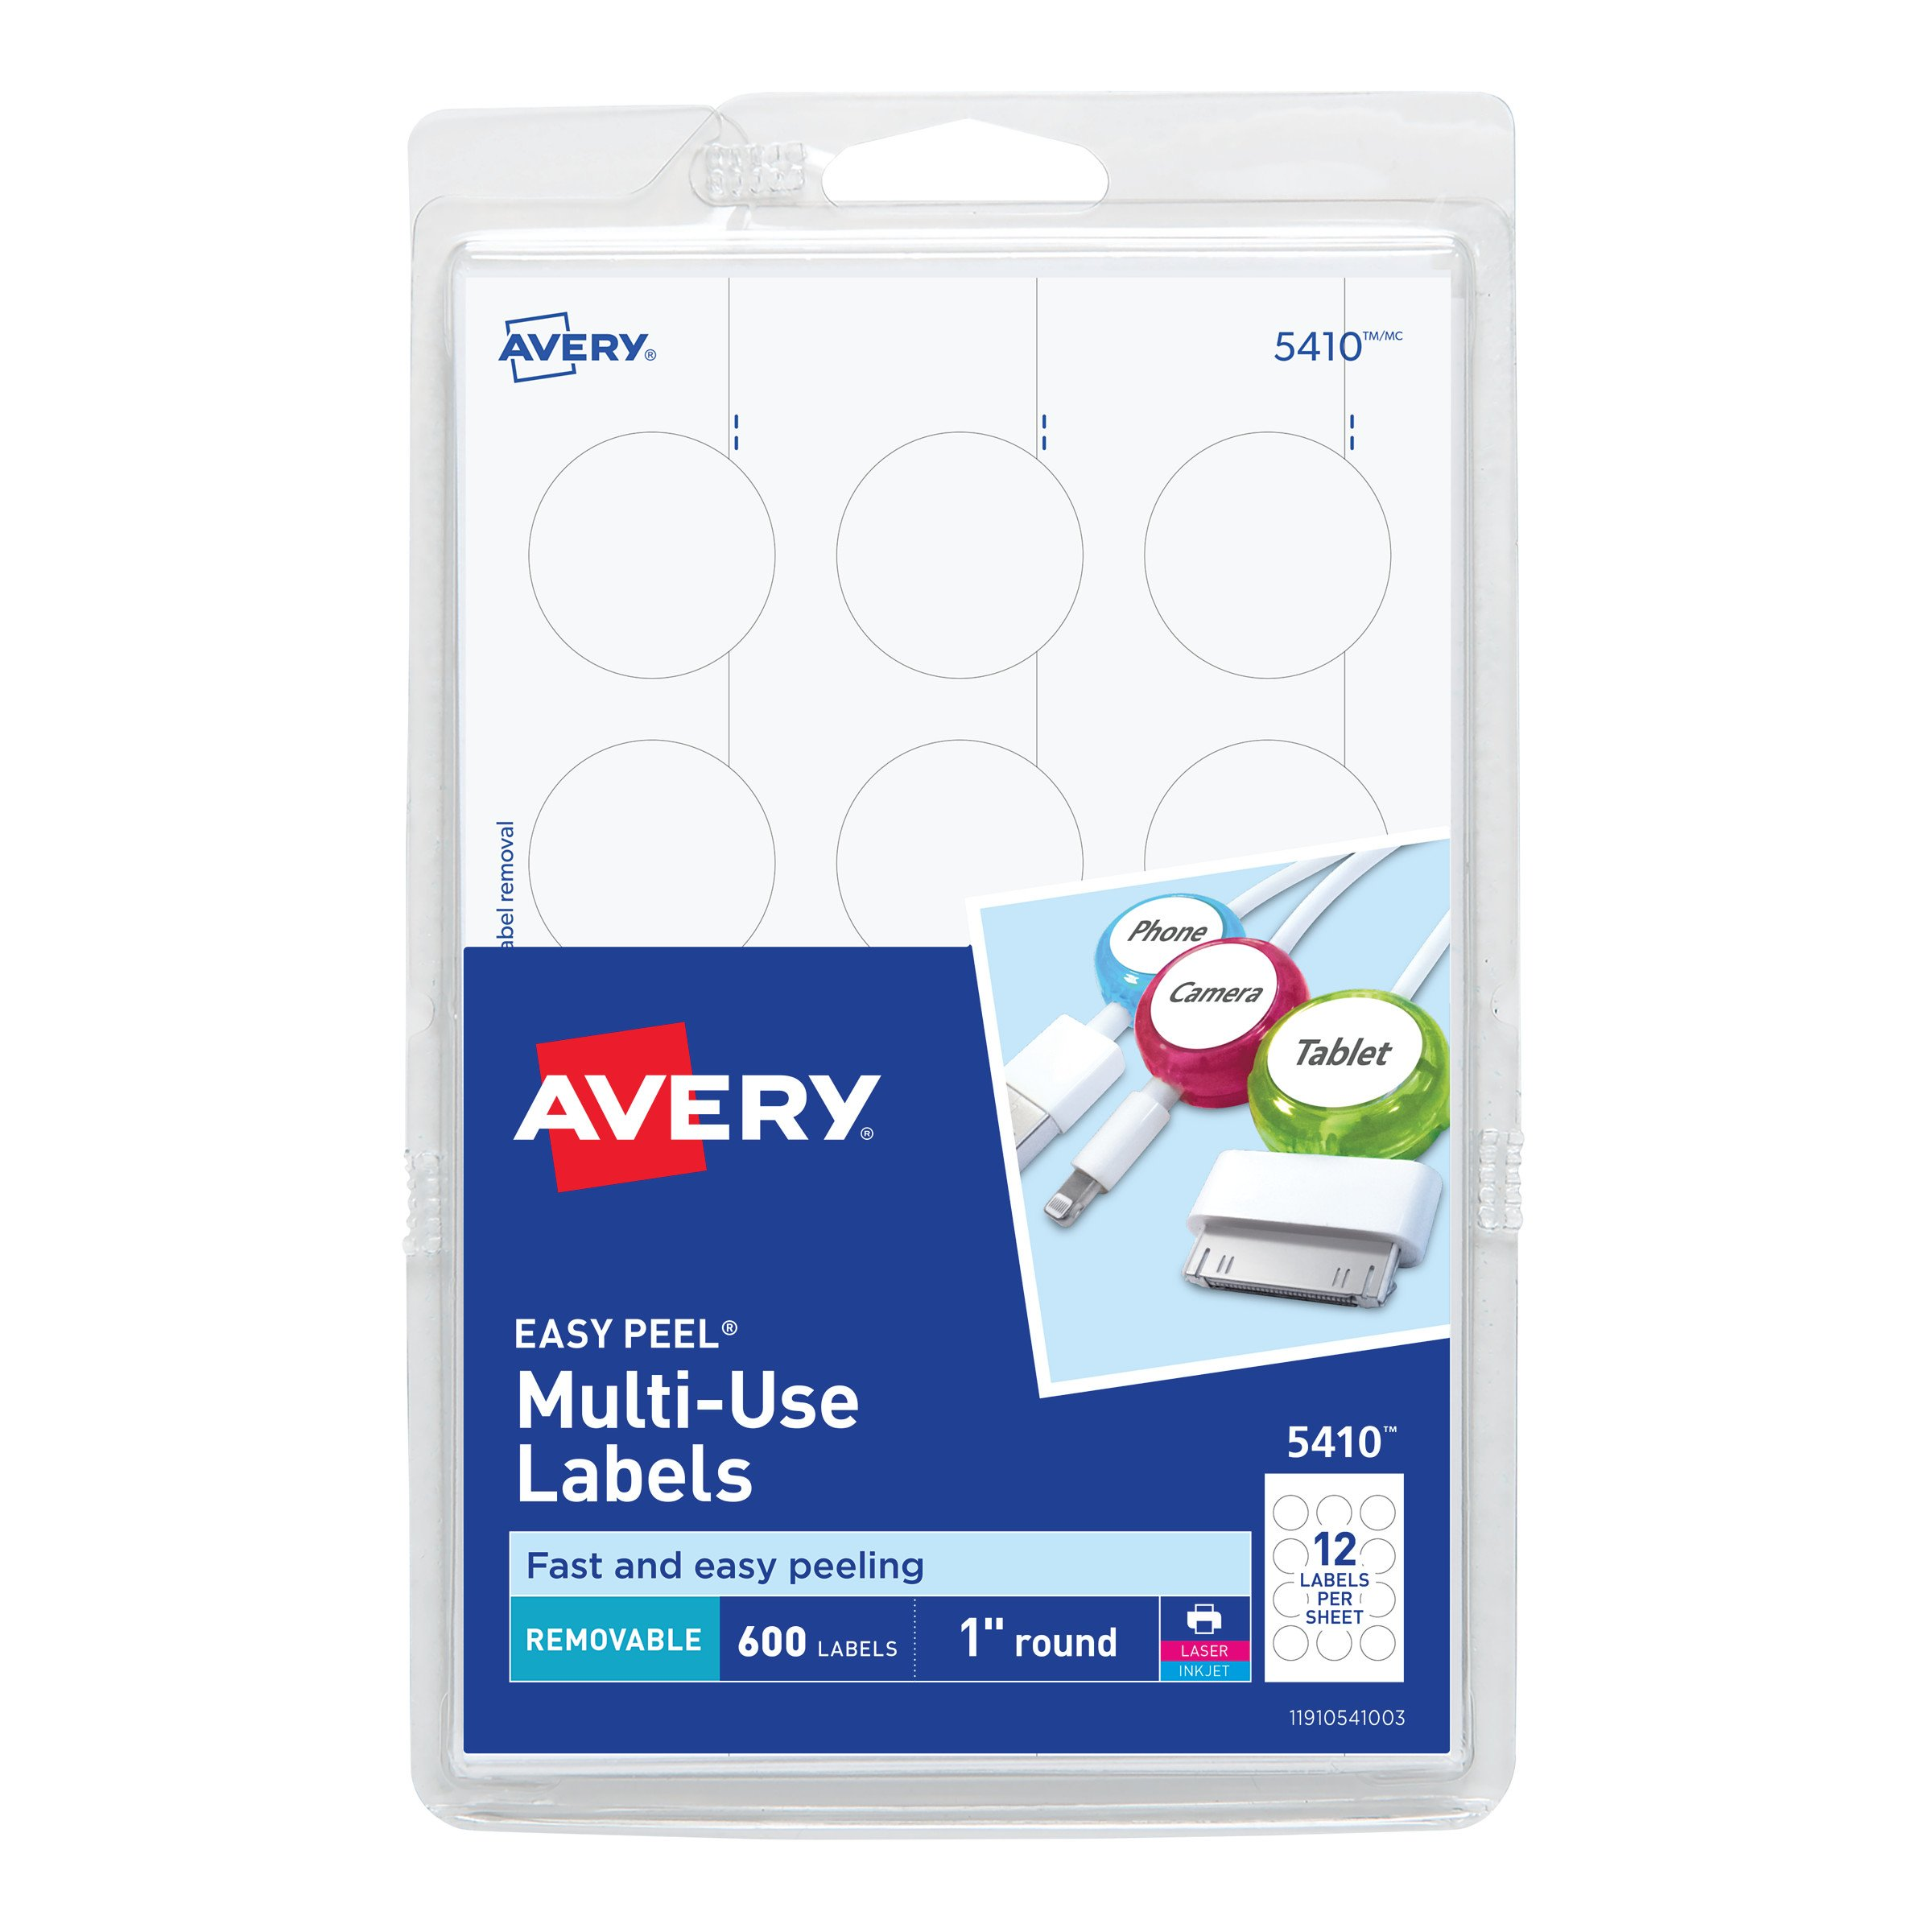 Avery Self-Adhesive Removable Labels, 1-Inch Diameter, White, Pack of 600 (5410)